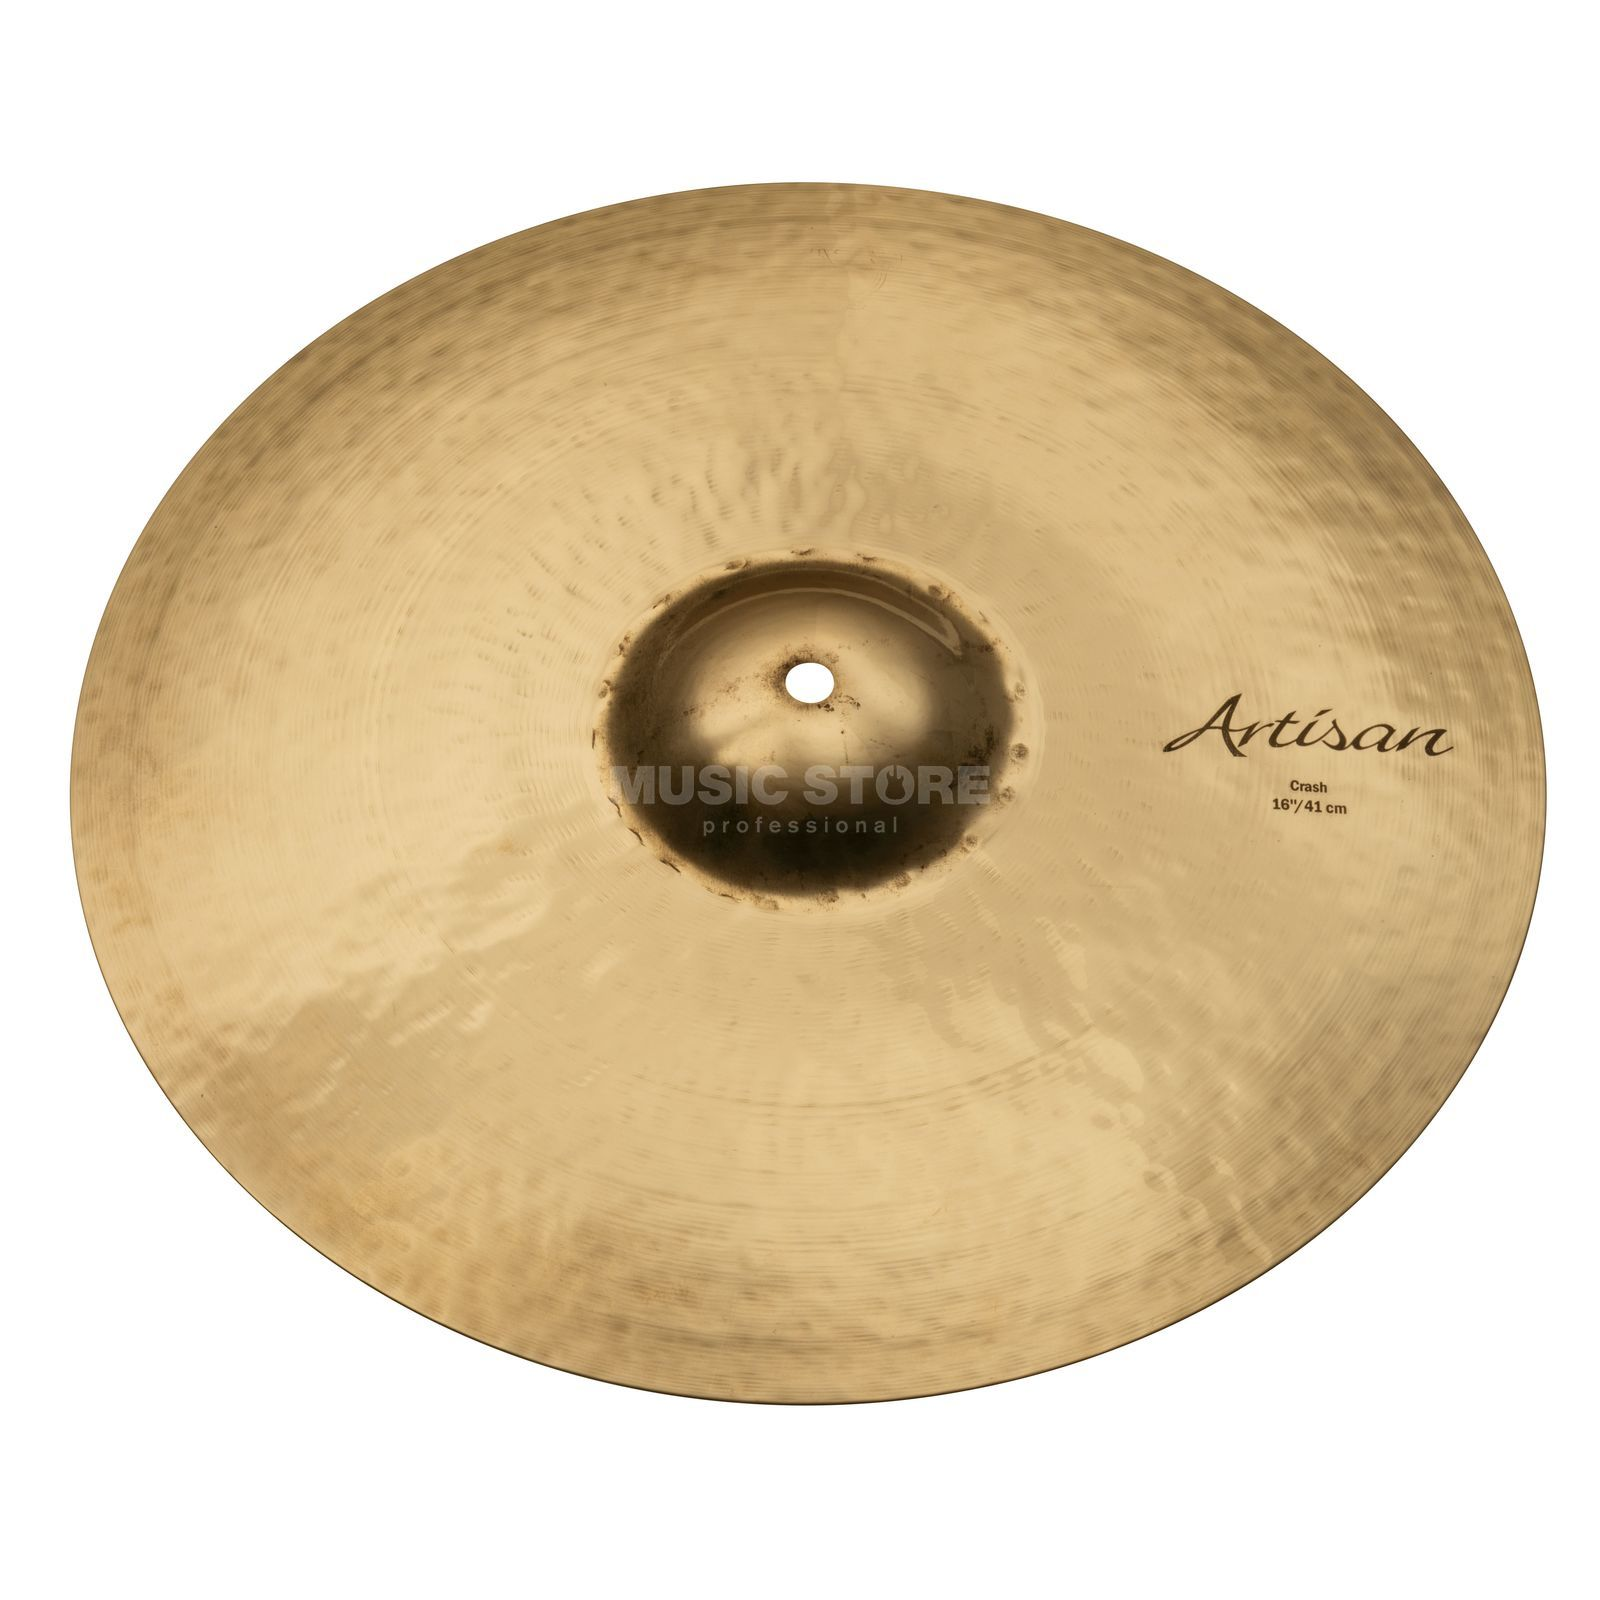 "Sabian Artisan Thin Crash 16"", Brilliant Finish Produktbild"